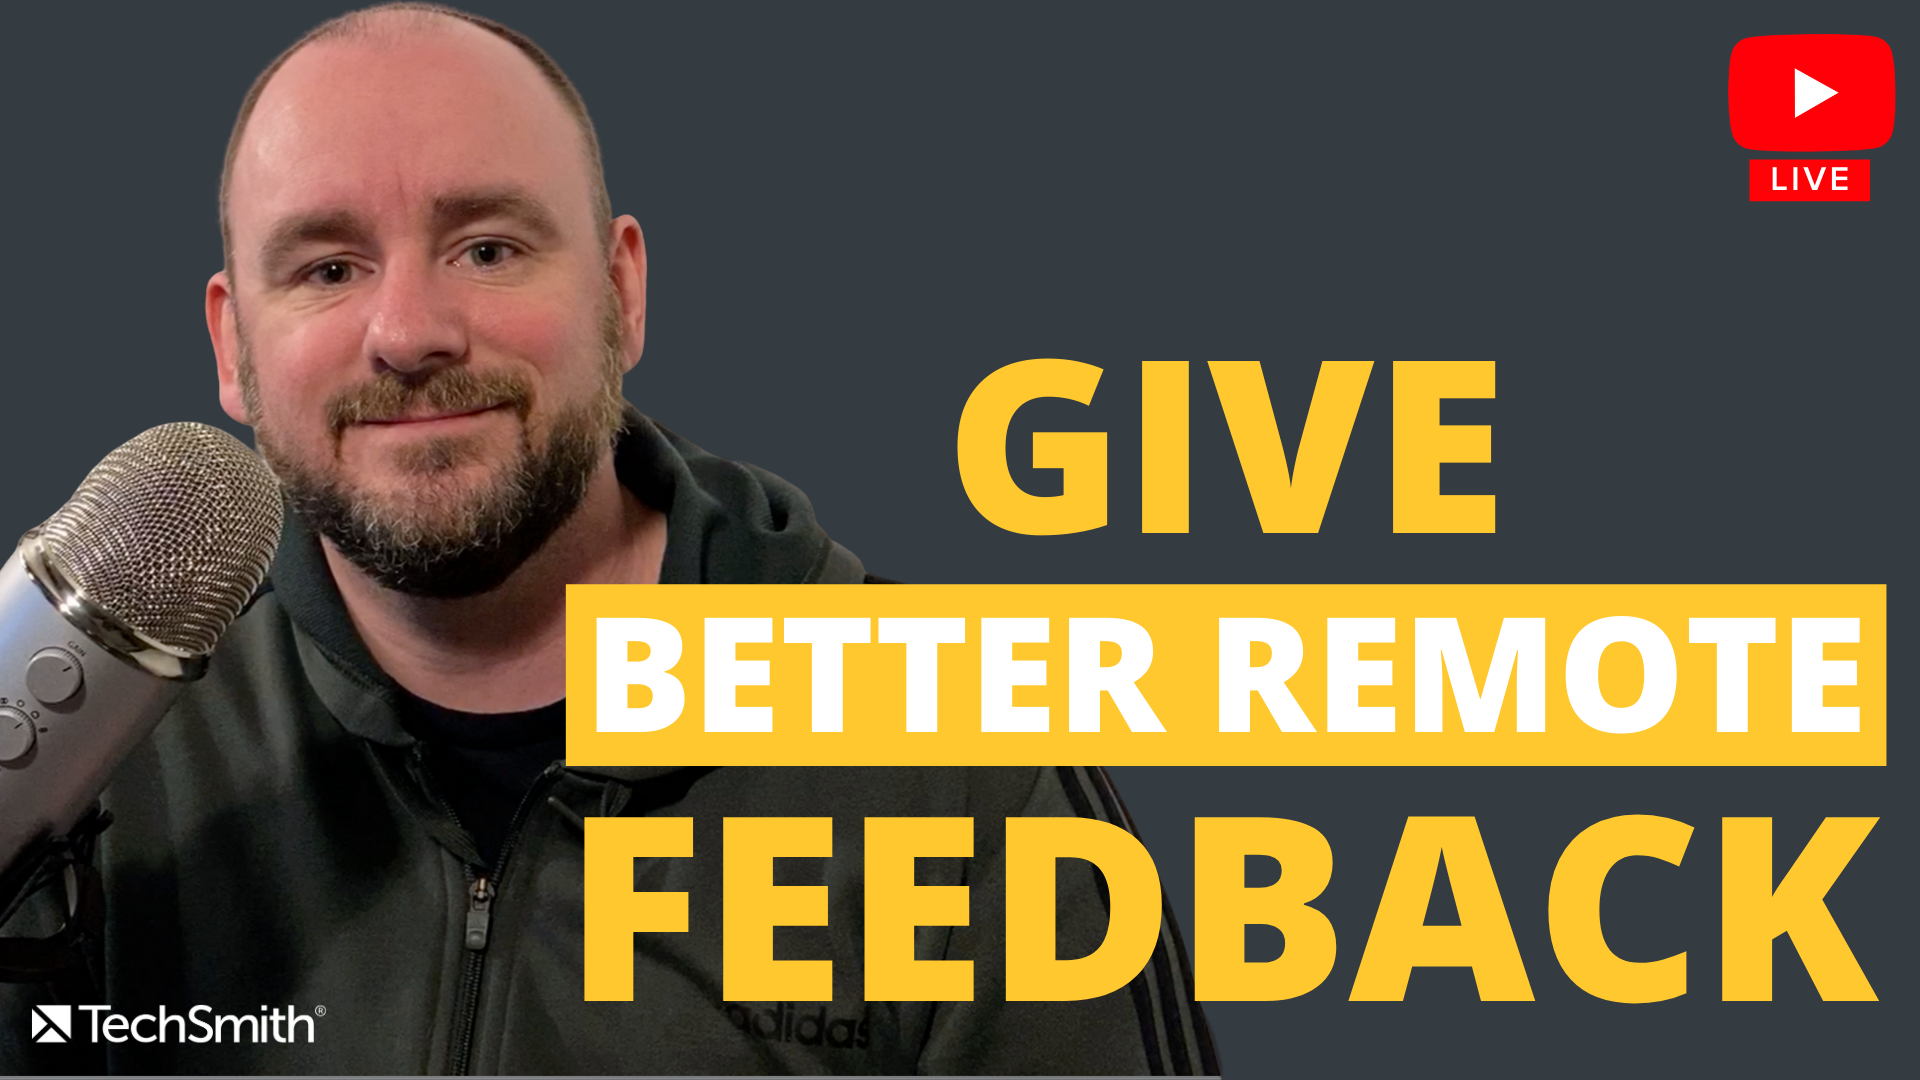 This is How to Give Better Remote Feedback